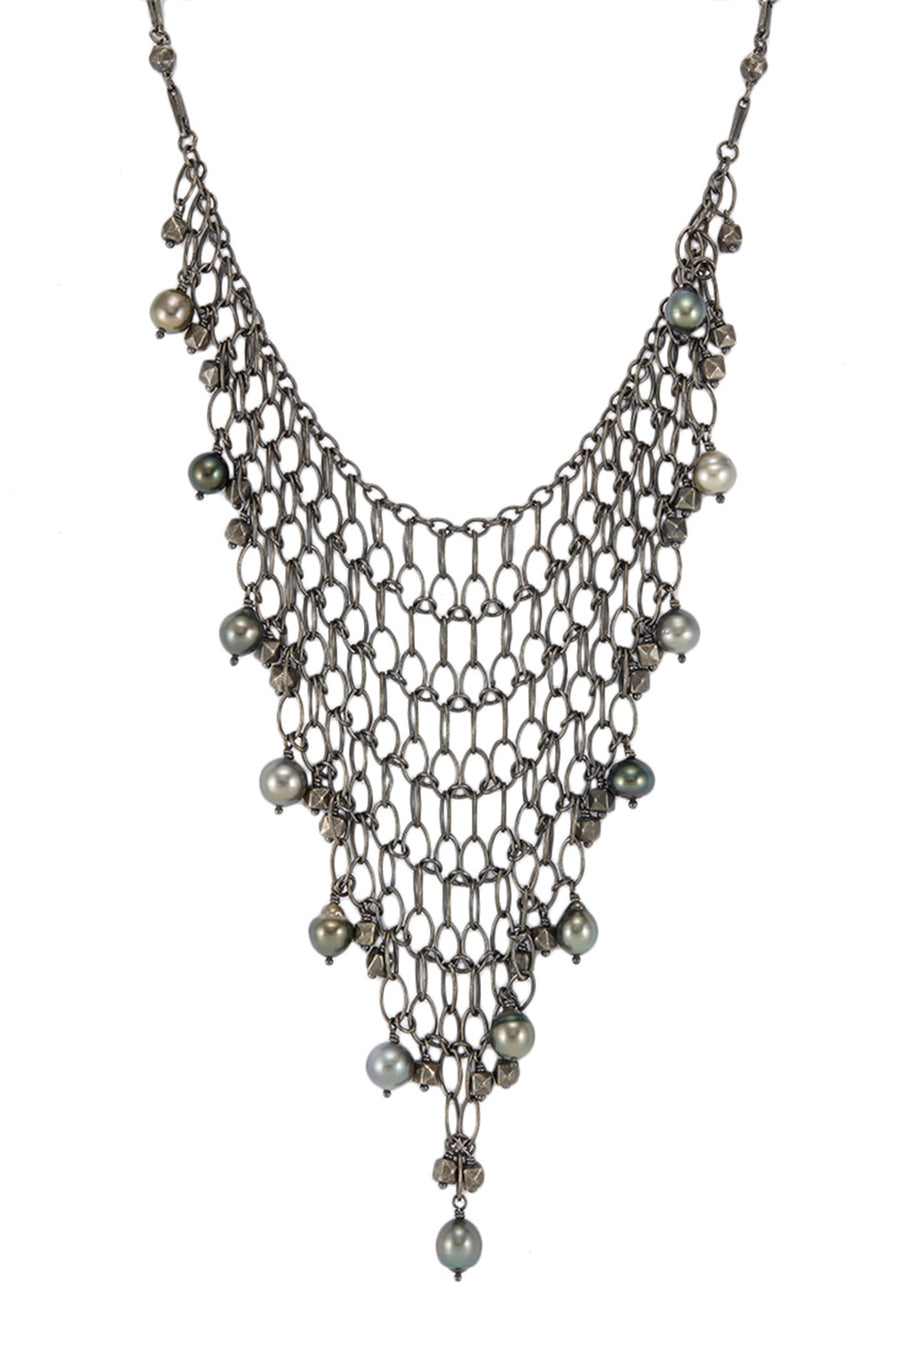 CONCA NECKLACE- LARGE